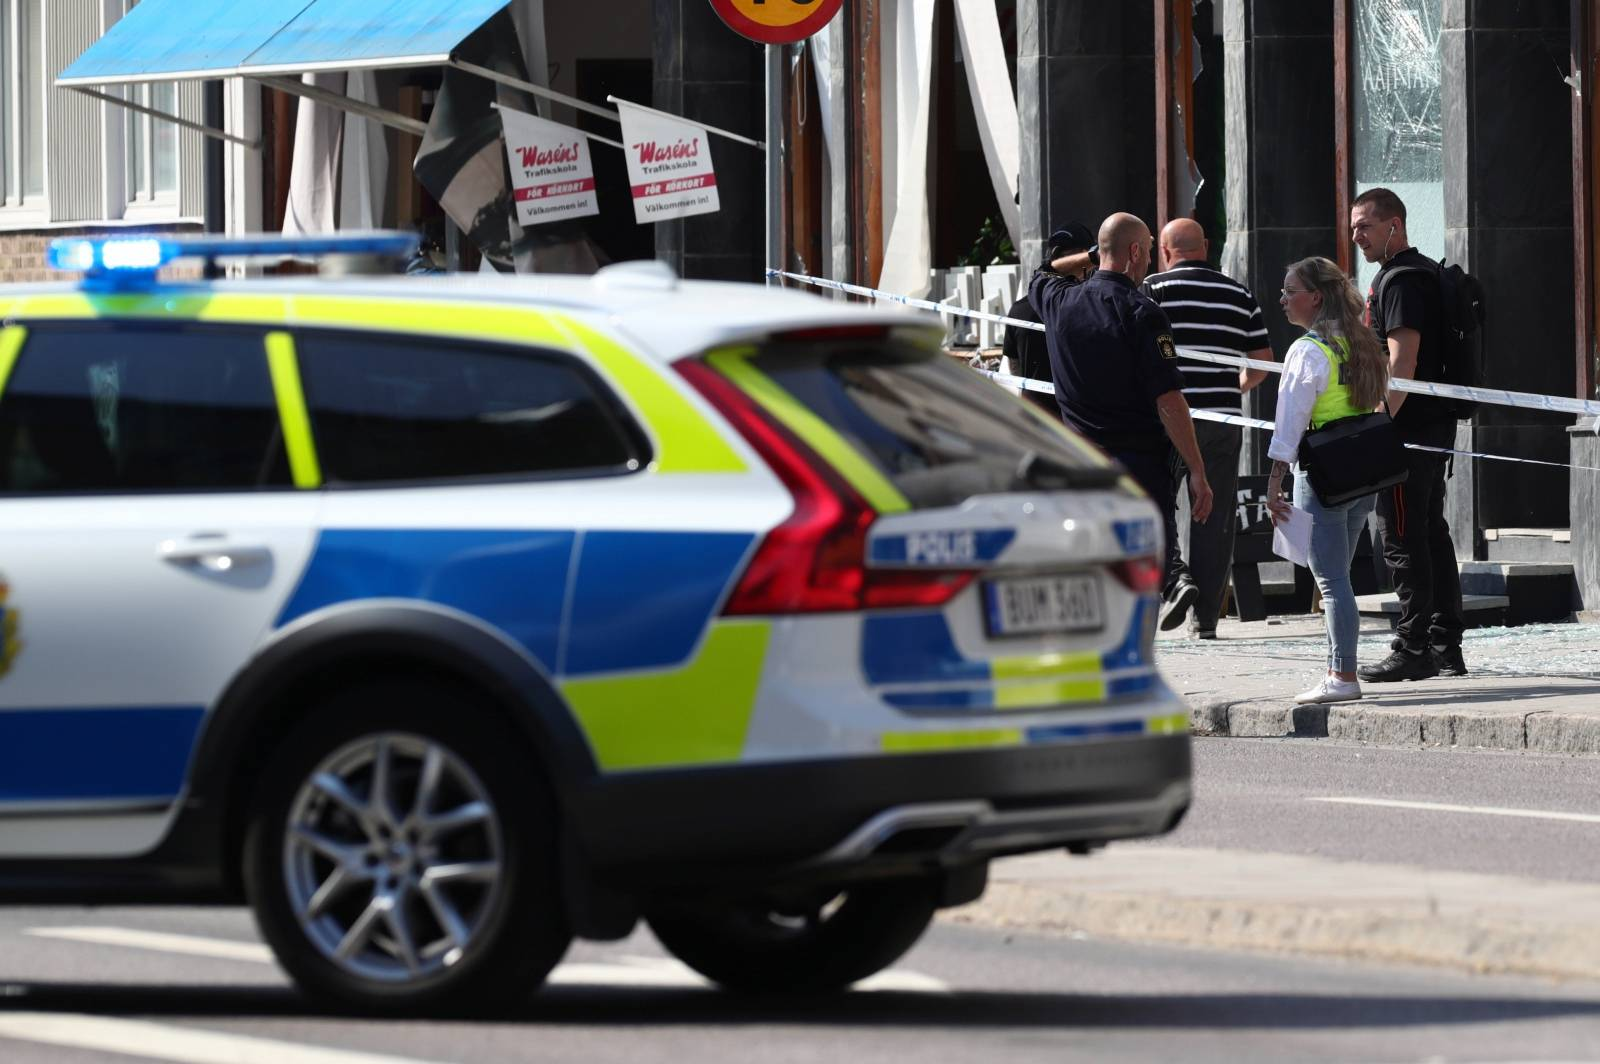 Police officers are seen at the site of an explosion in Linkoping